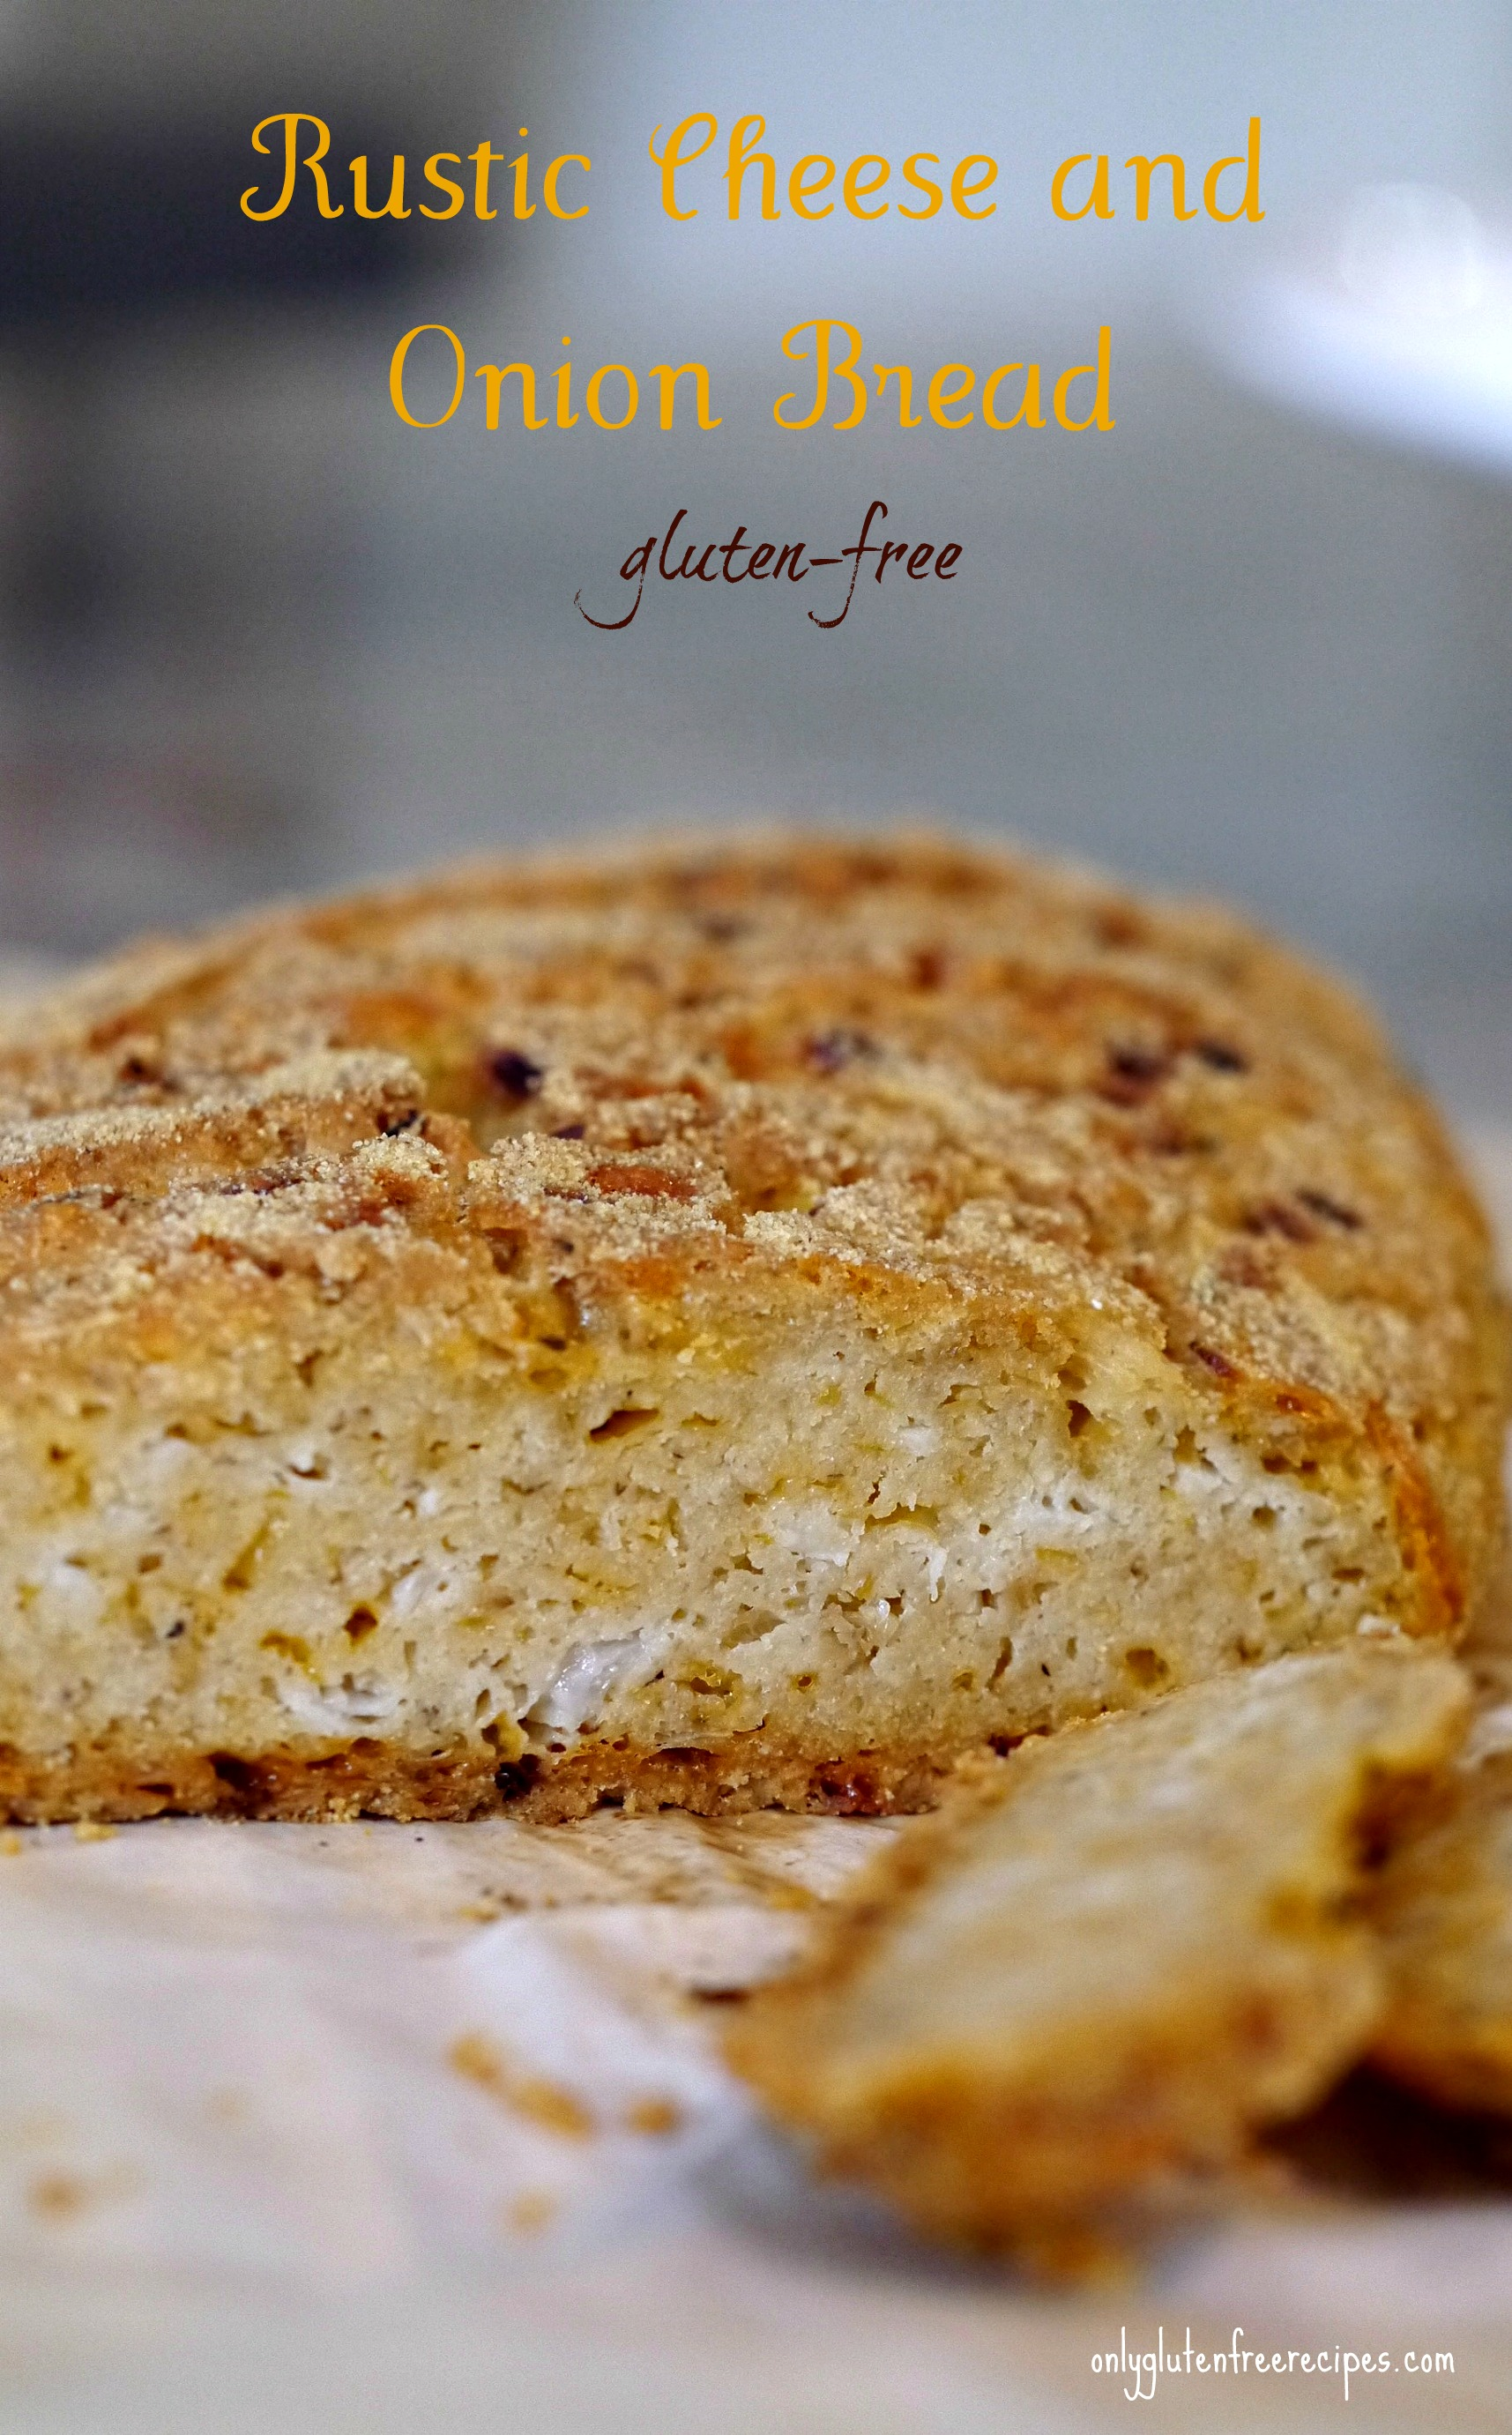 Gluten Free Rustic Cheese and Onion Bread